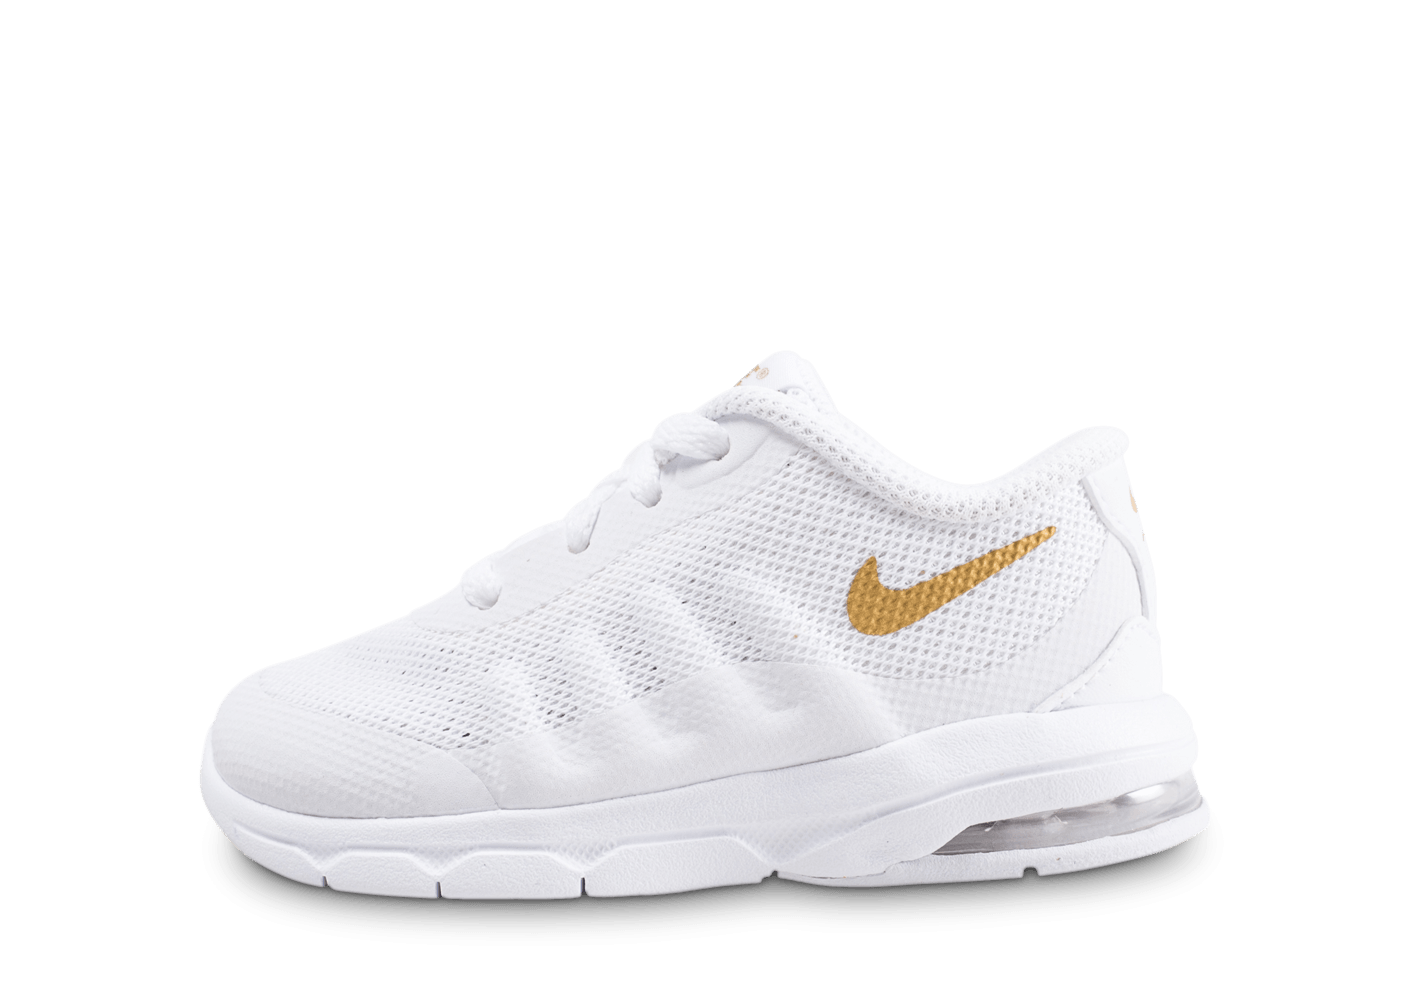 Chaussures Nike Air Max Invigor Bebe Blanche Et Or Vue Exterieure